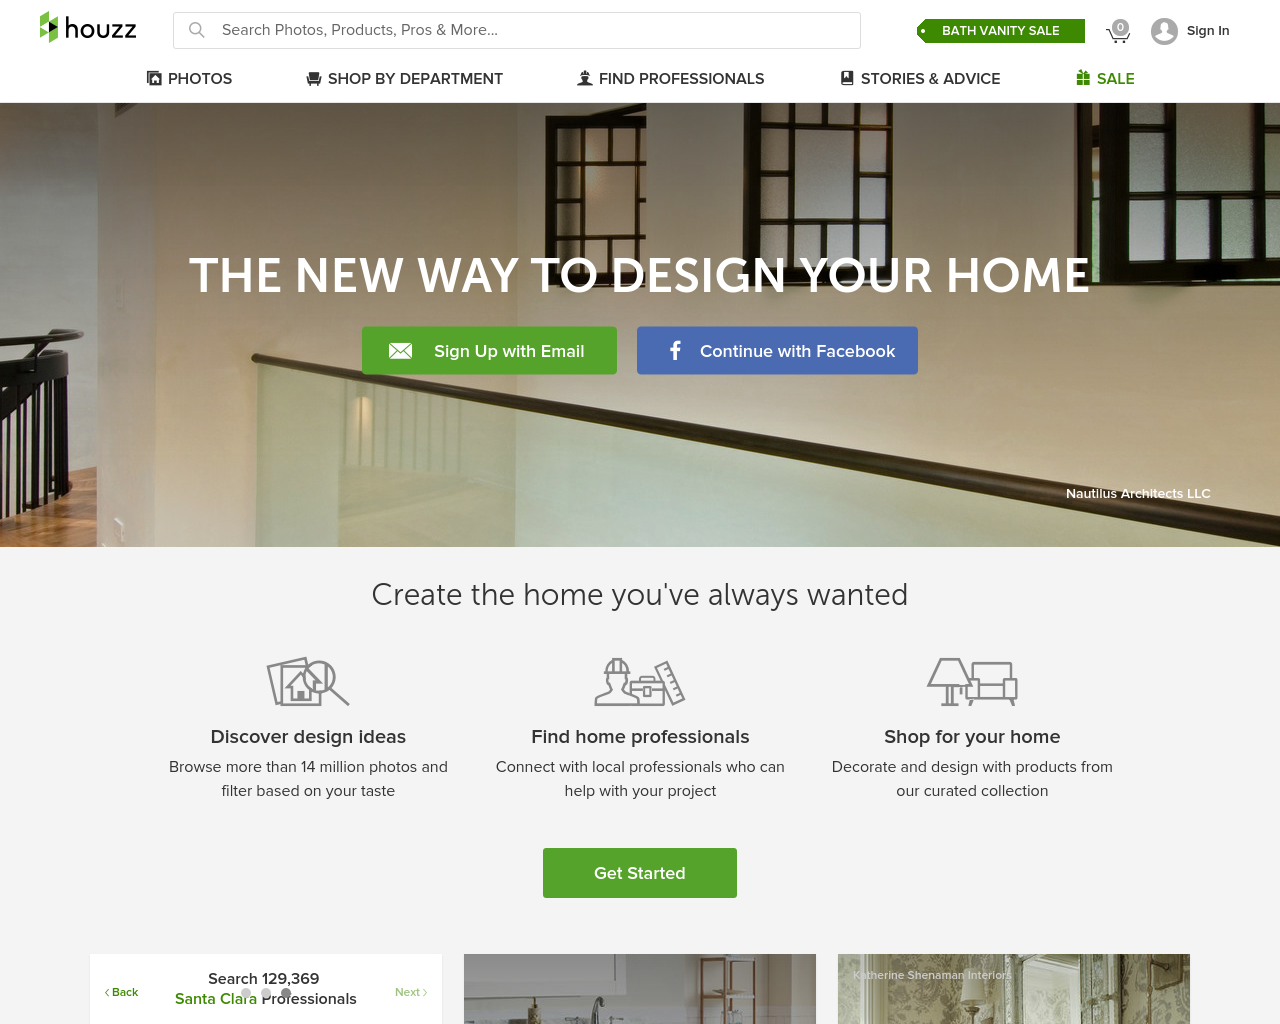 Houzz-Advertising-Reviews-Pricing